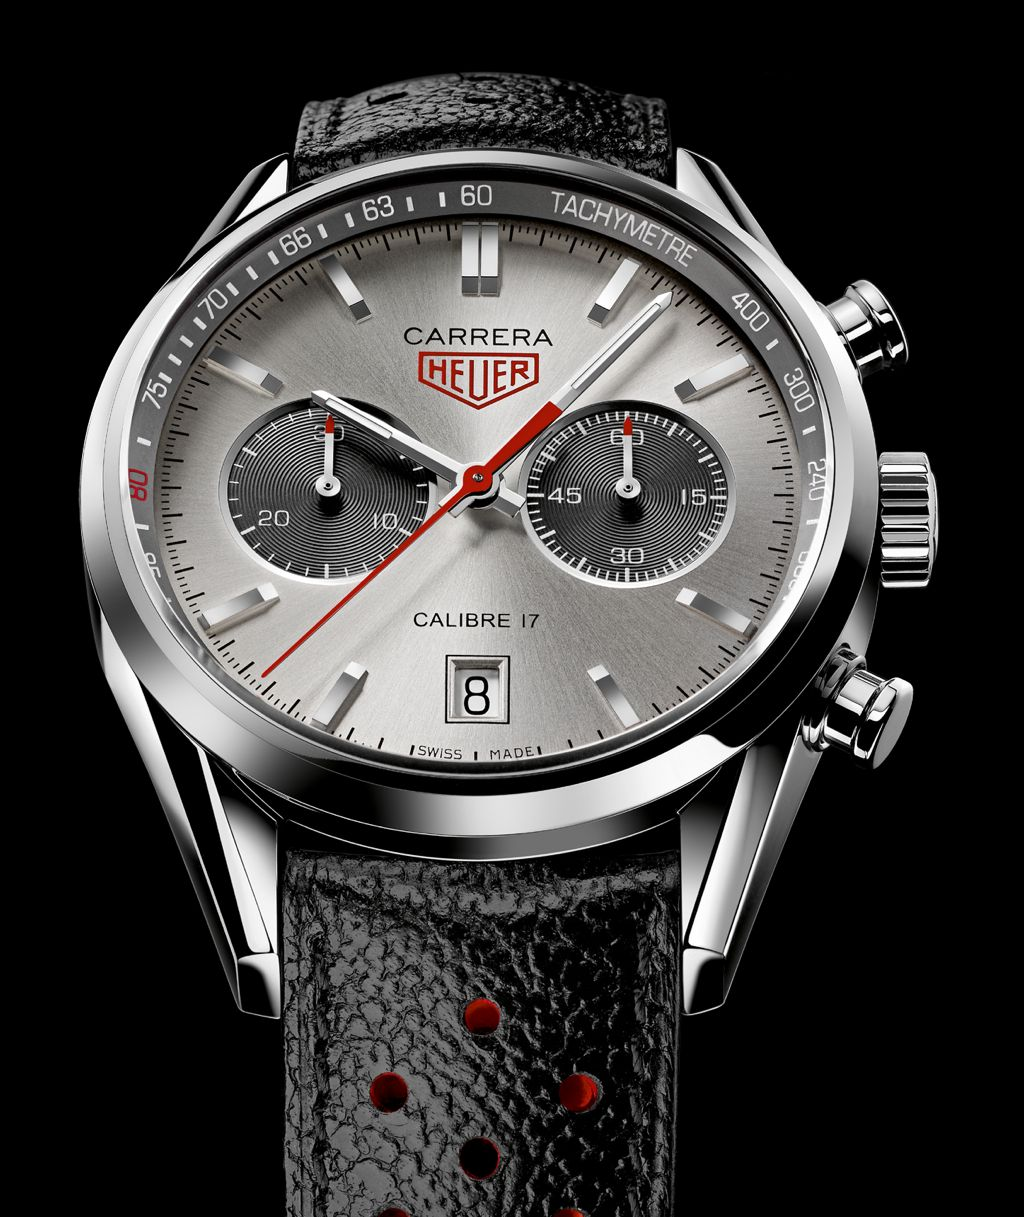 tag heuer 80th birthday watch for sale ; Carrera_Calibre-17-Jack-Heuer-80th-birthday_CV2119